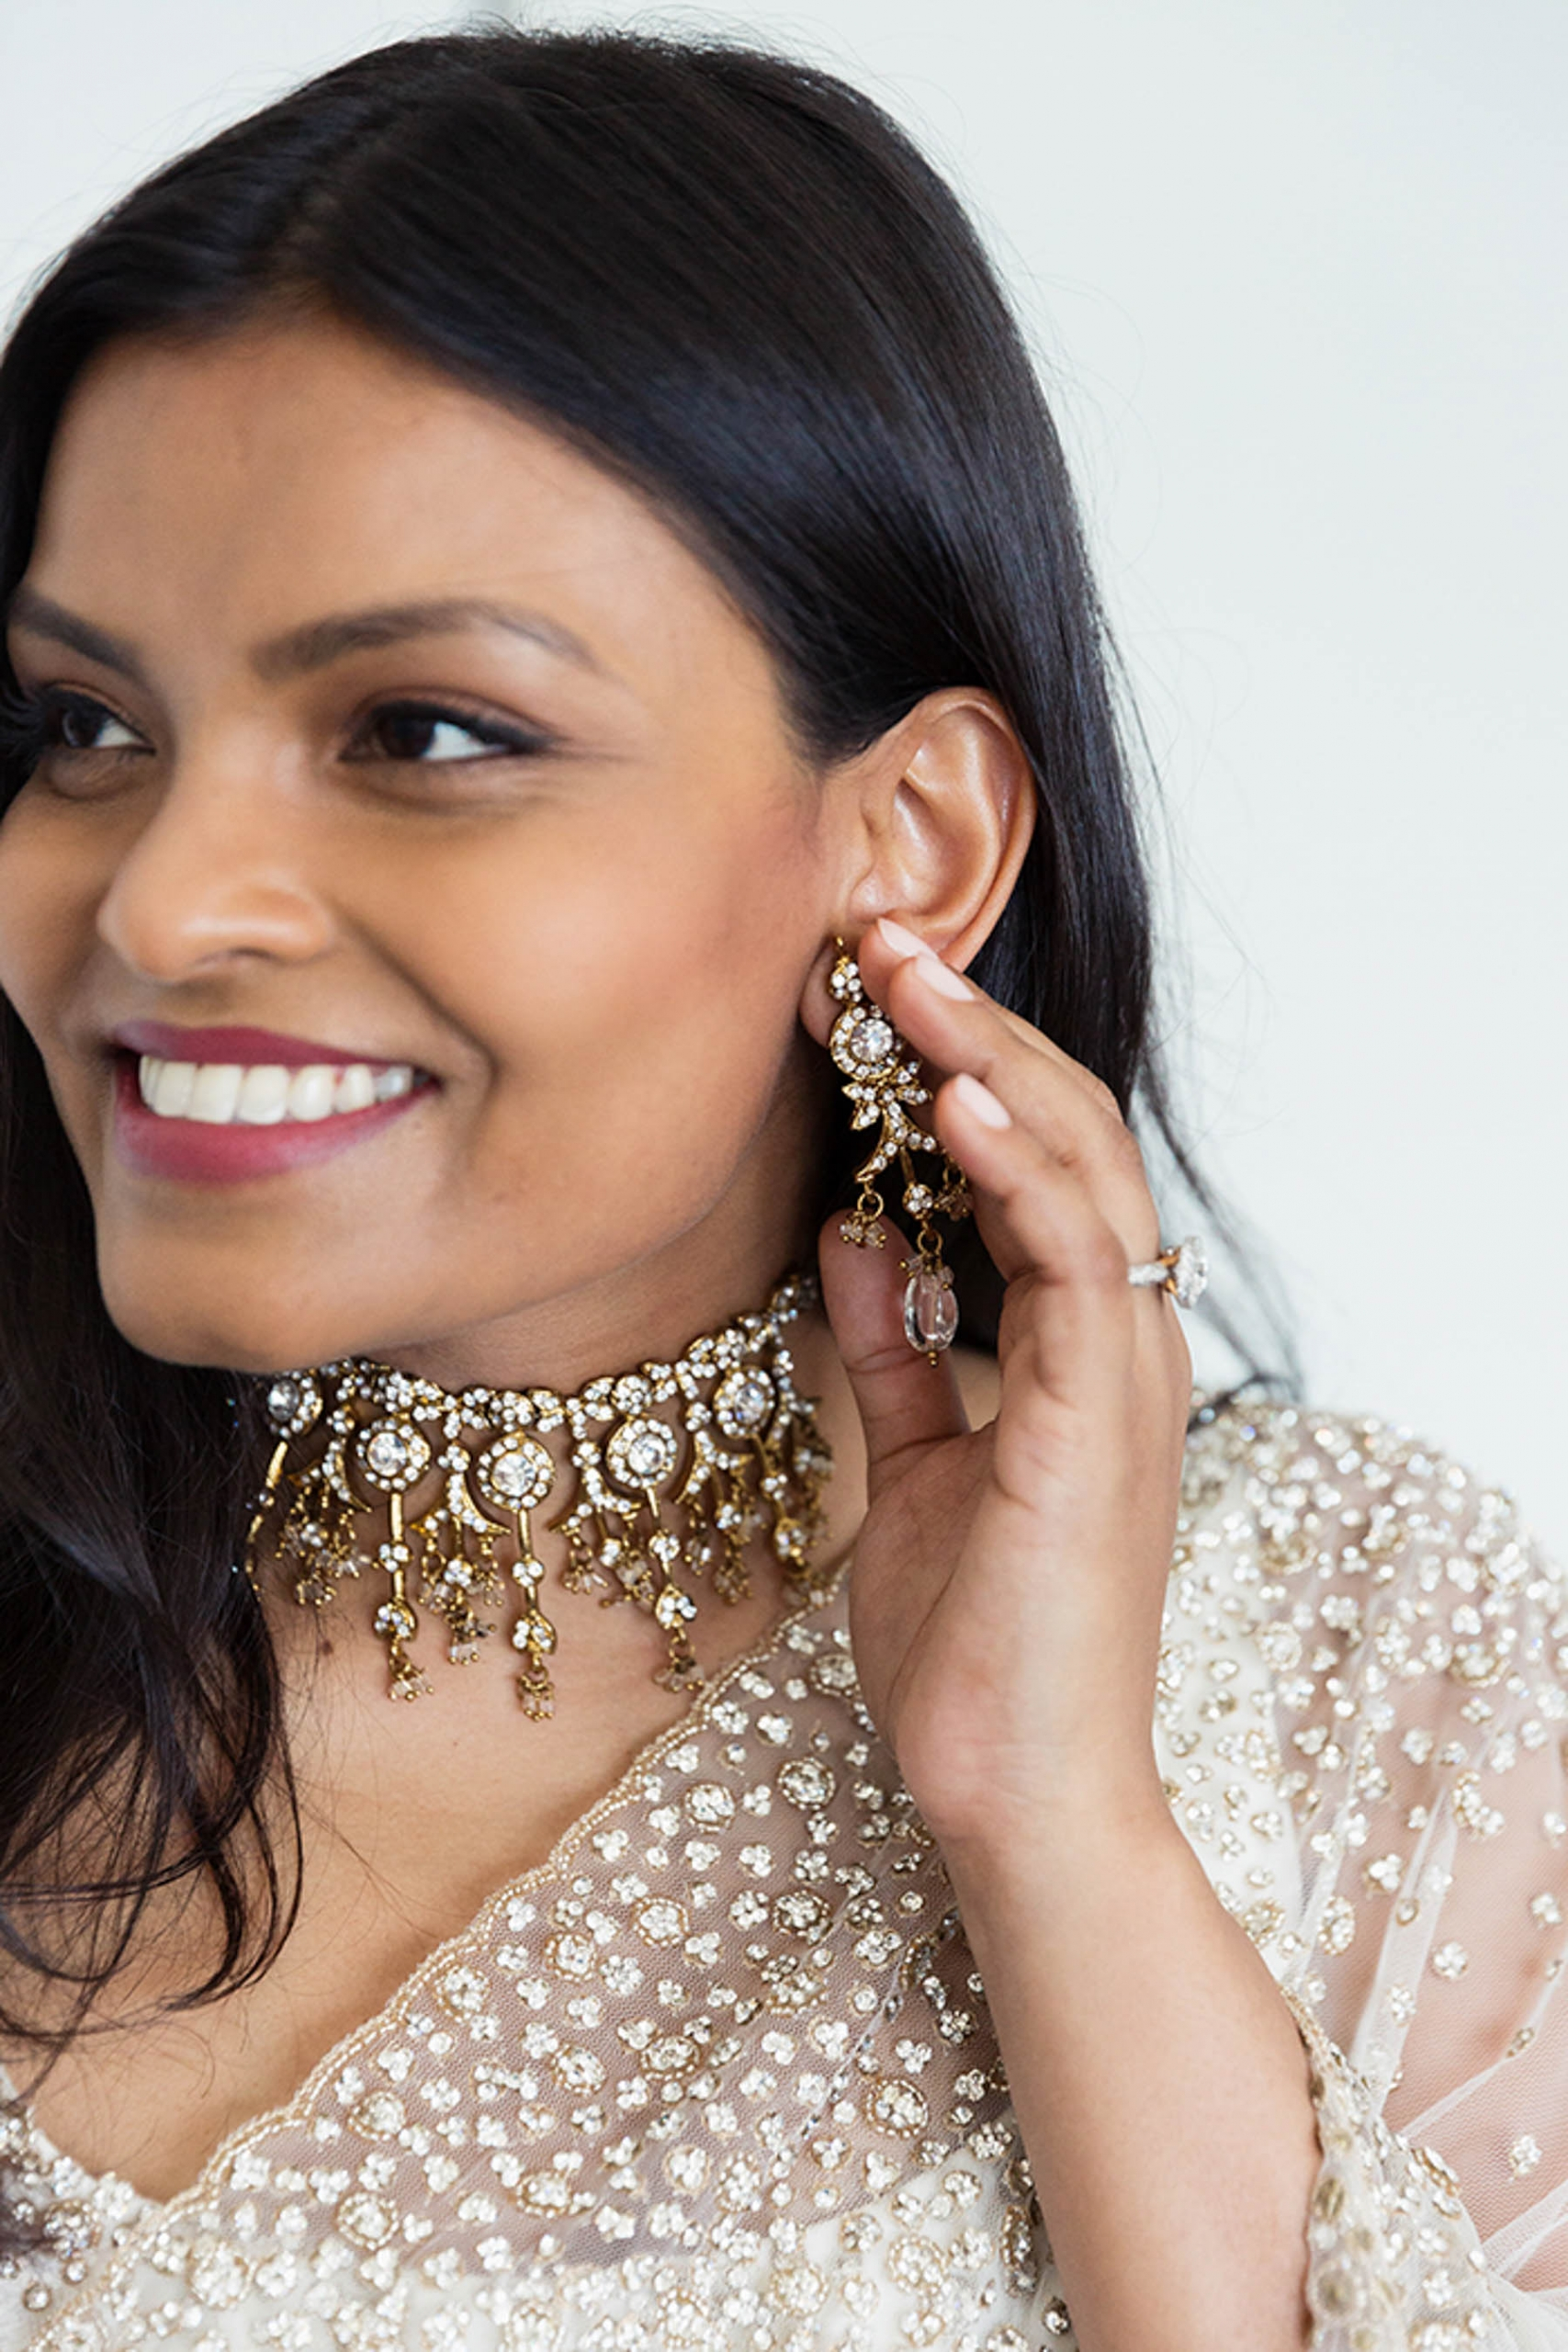 South Asian bride Erandi, showing off her stunning bridal jewellery